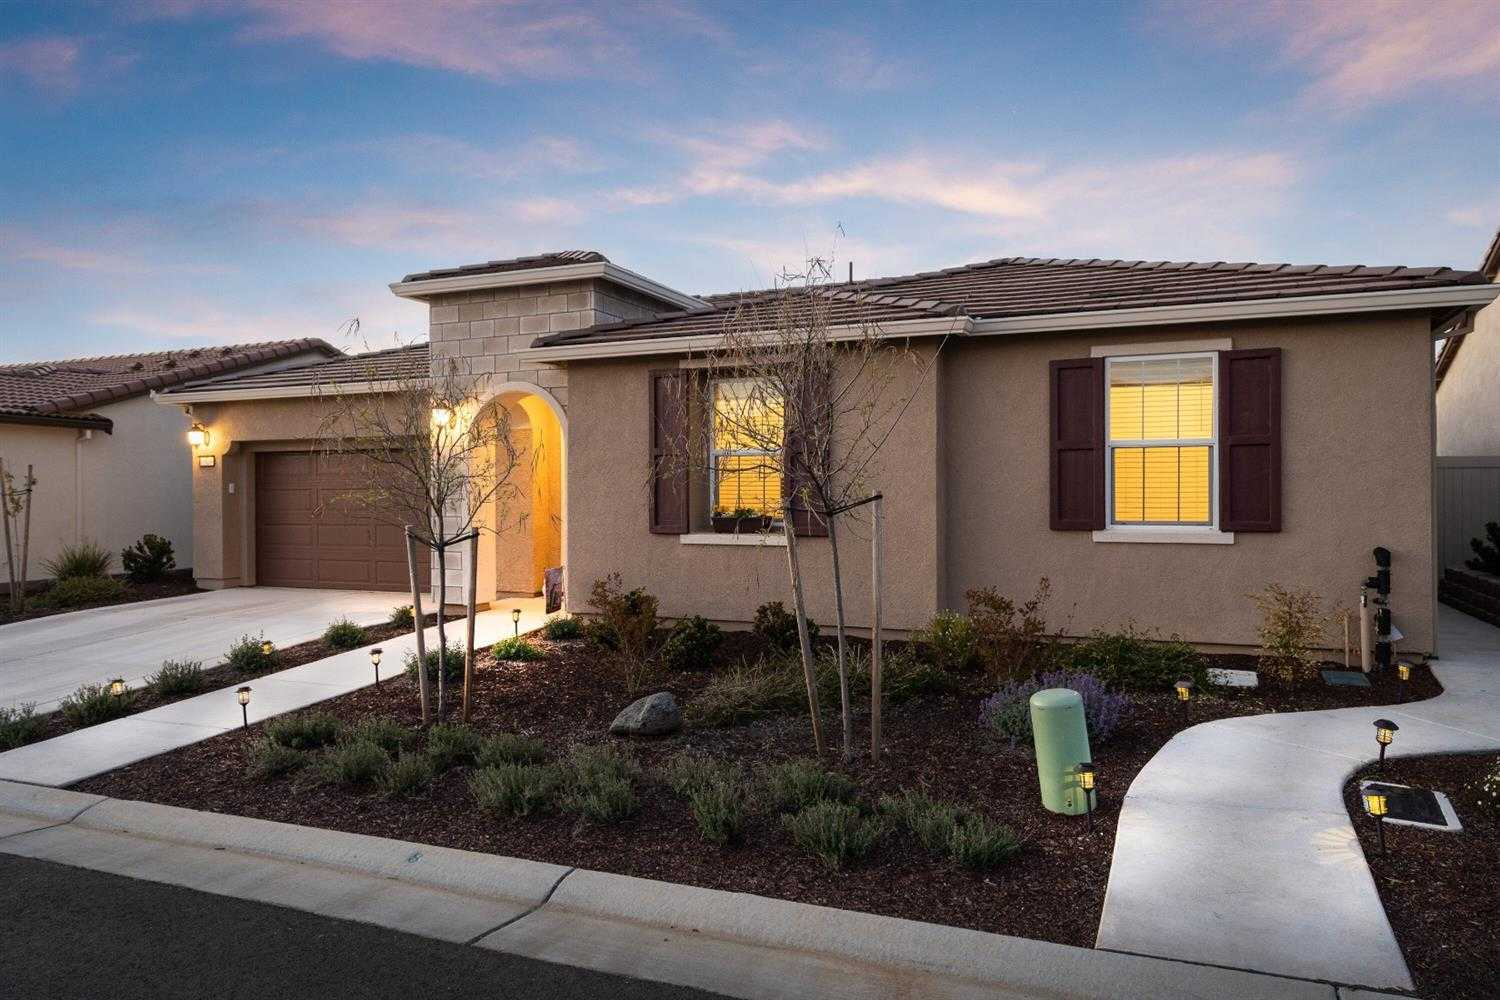 $575,000 - 3Br/2Ba -  for Sale in El Dorado Hills